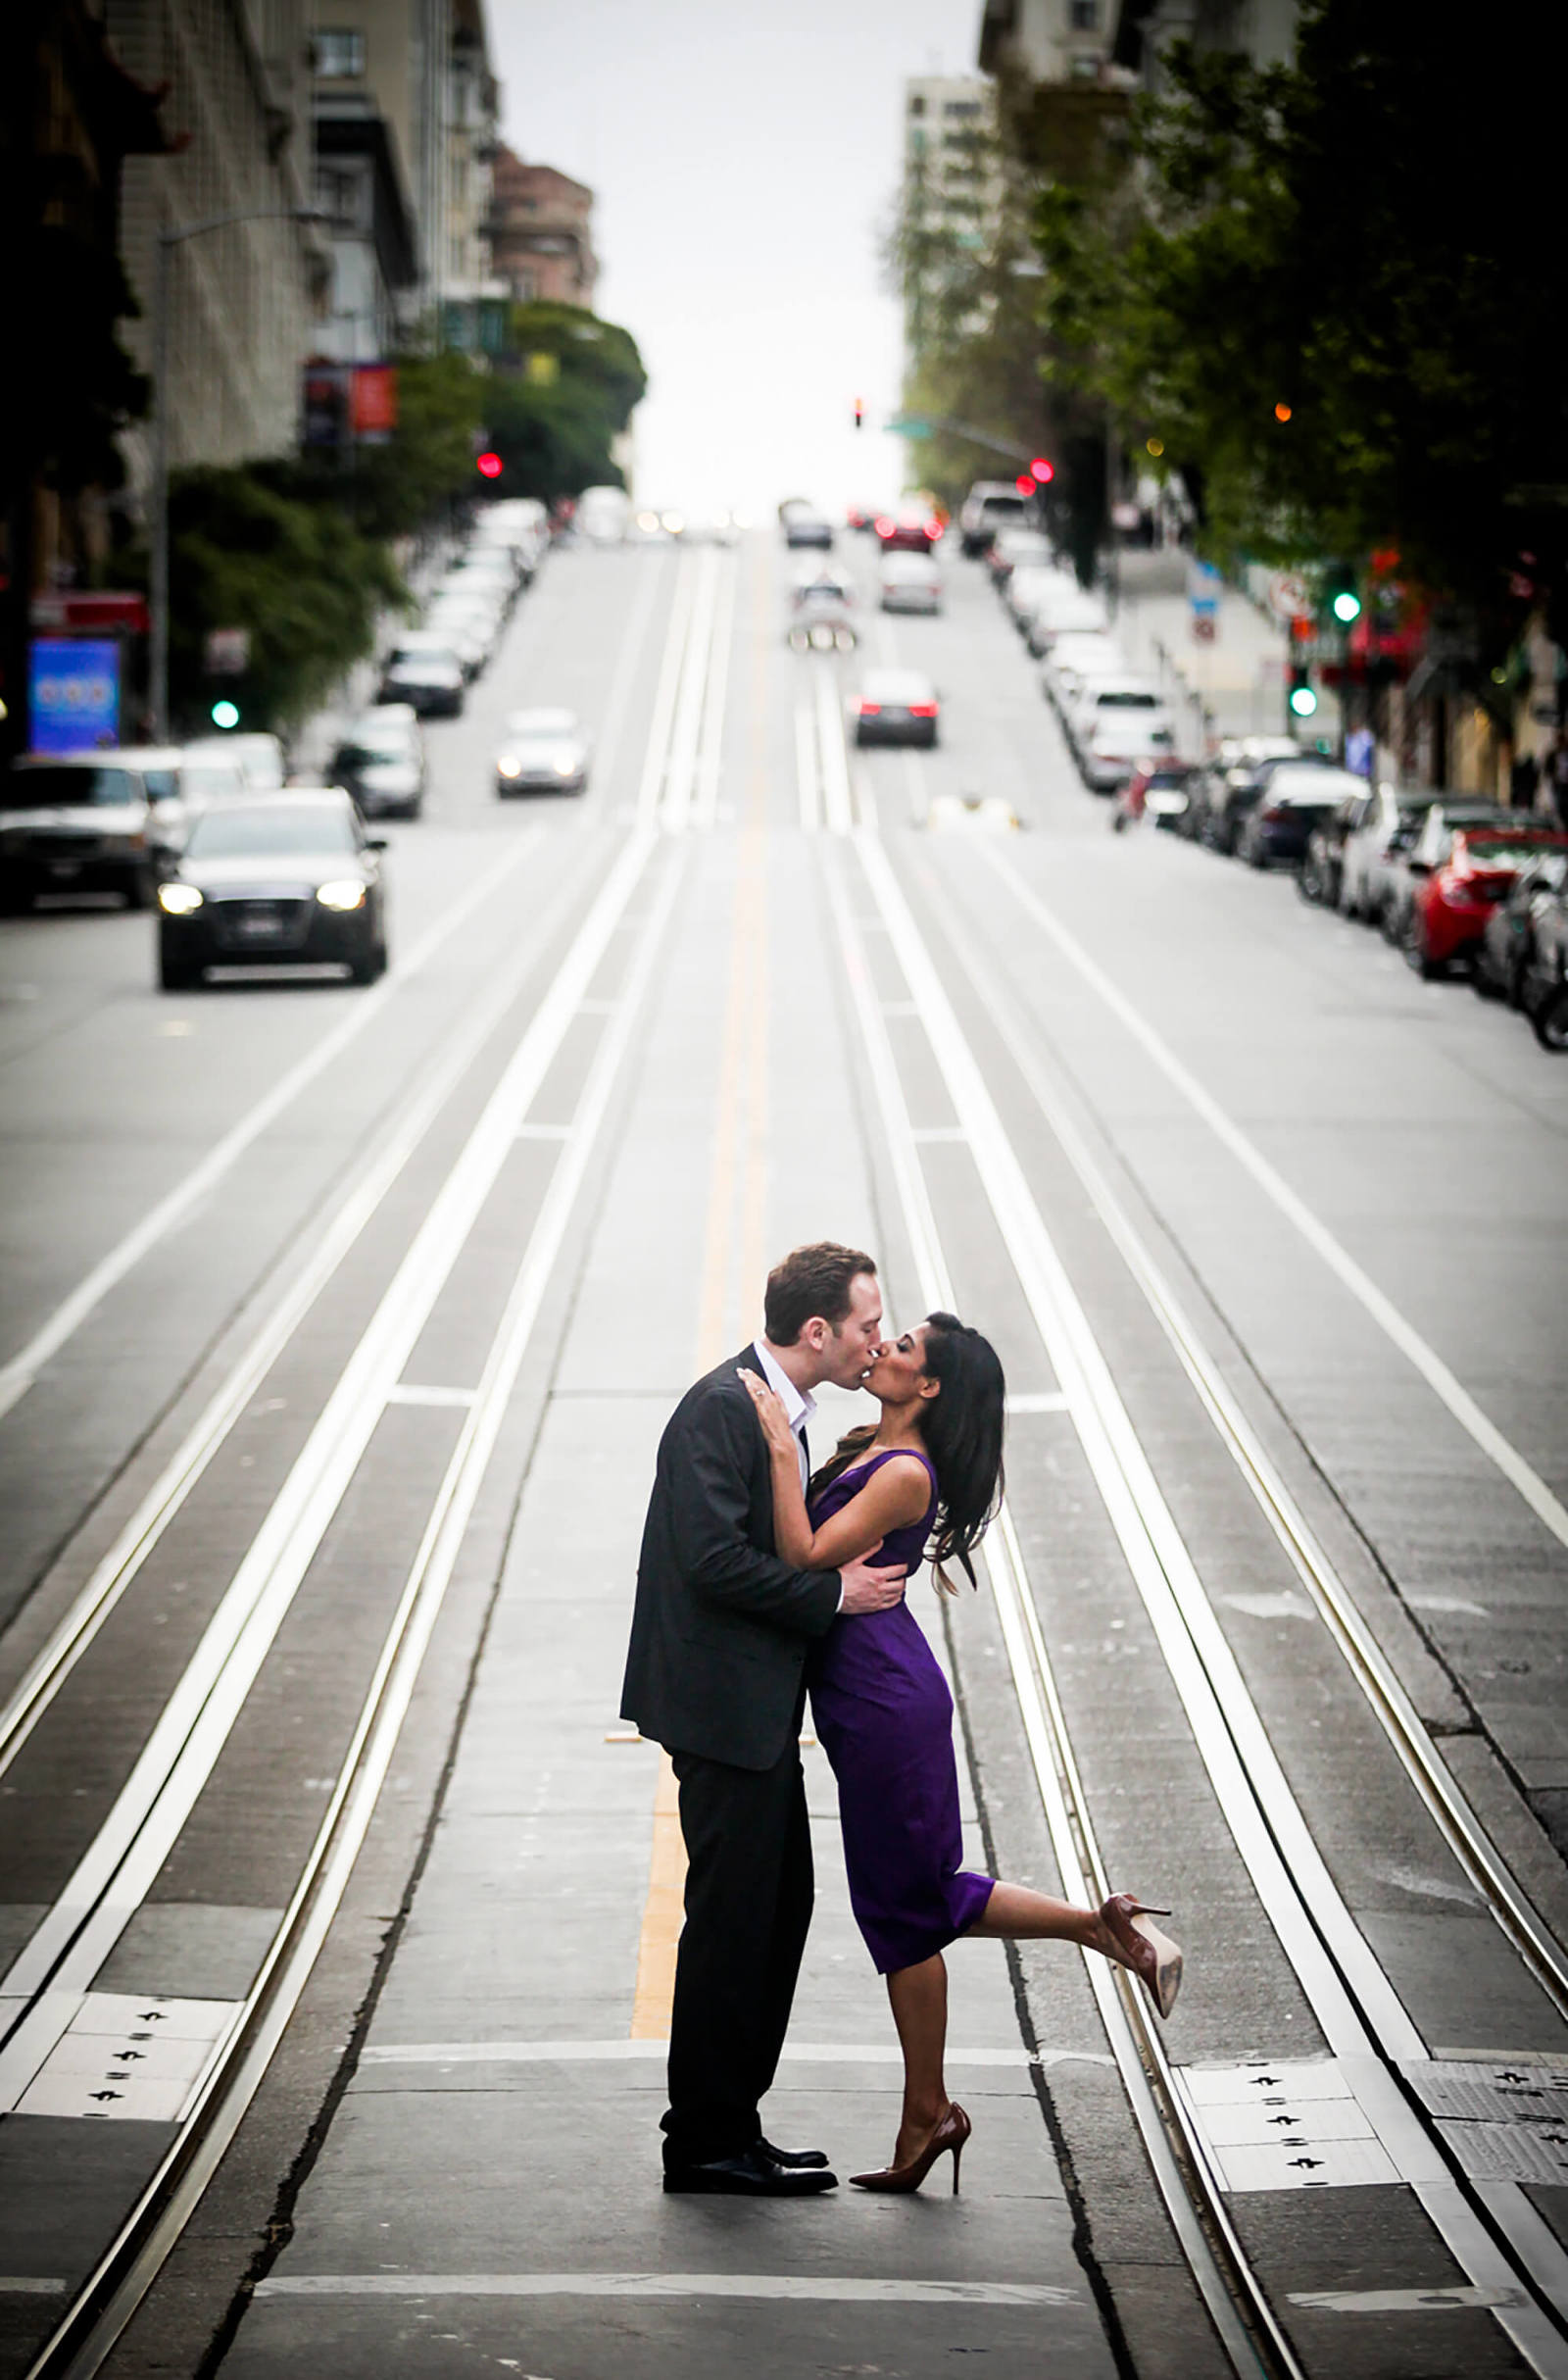 San Francisco engagement photographer - couple on city street